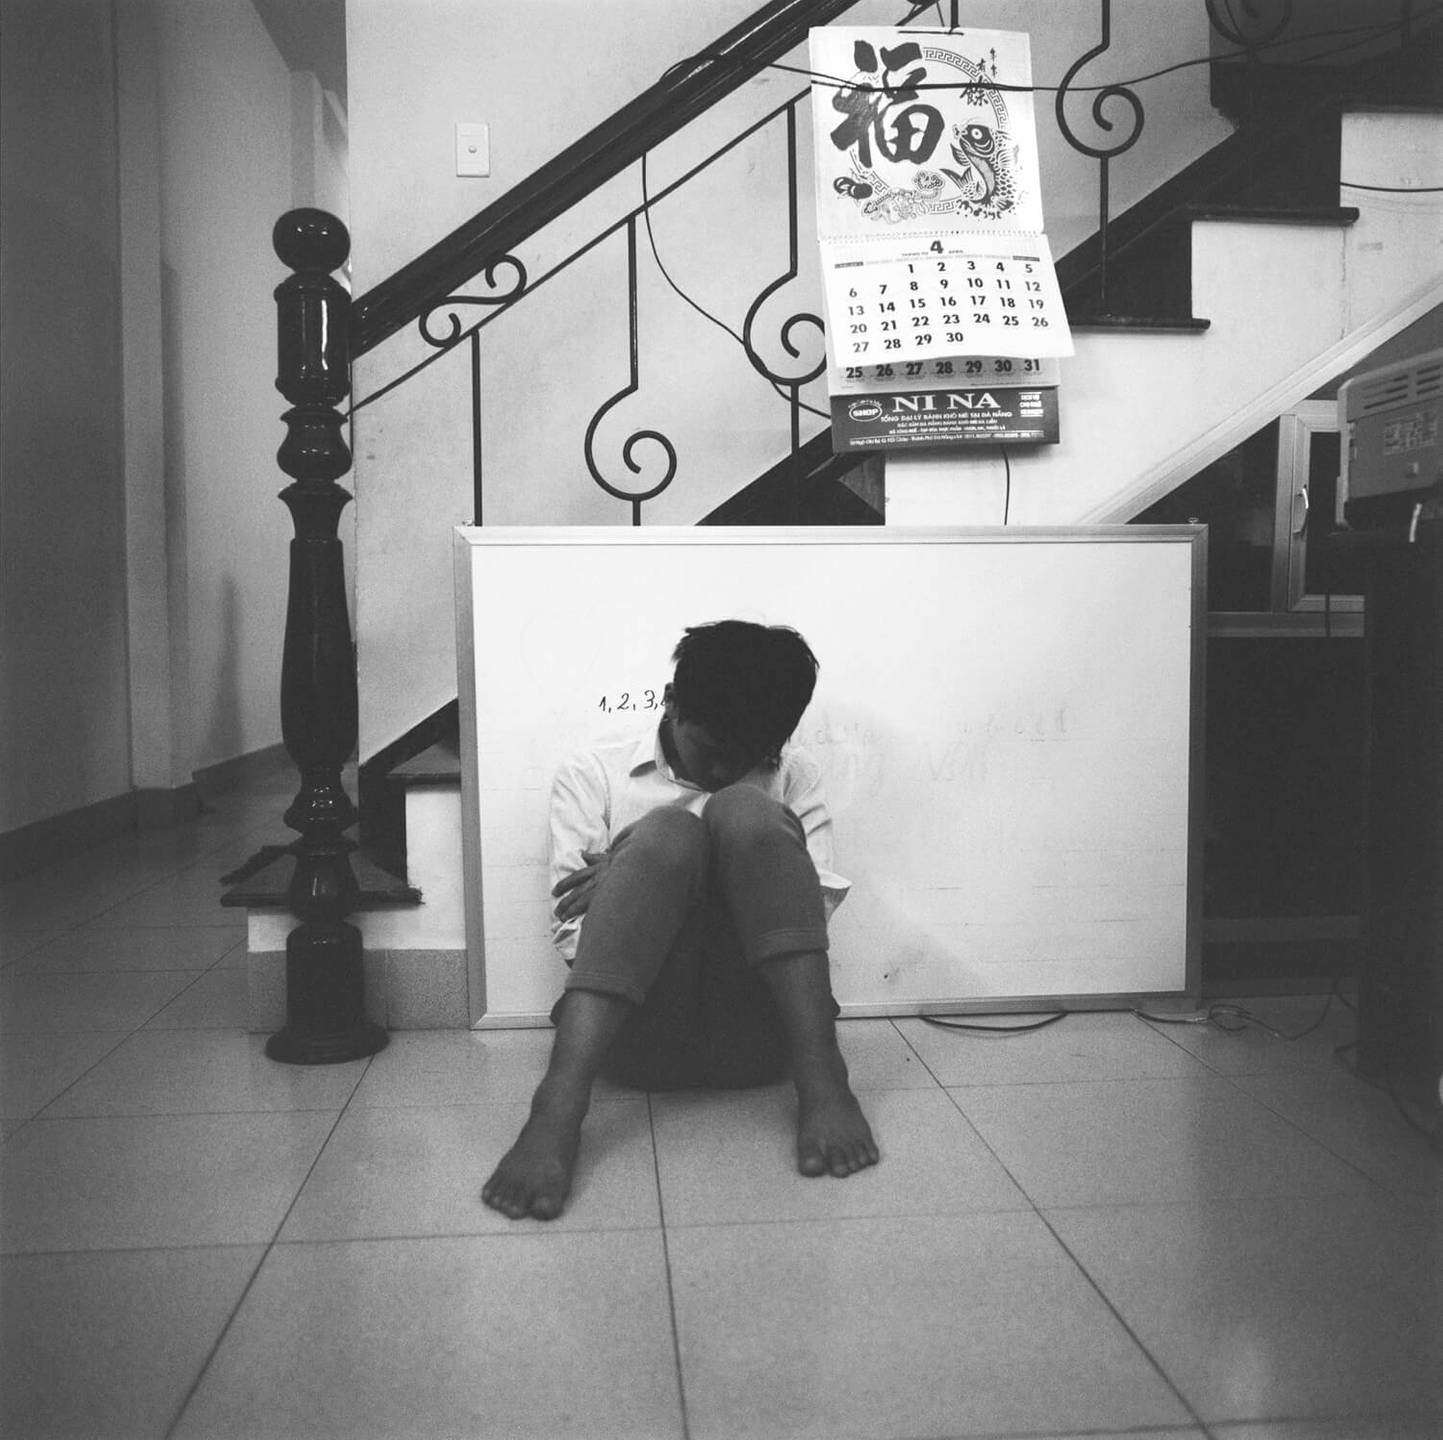 An Asian child slumped against a wall and seated on the floor.